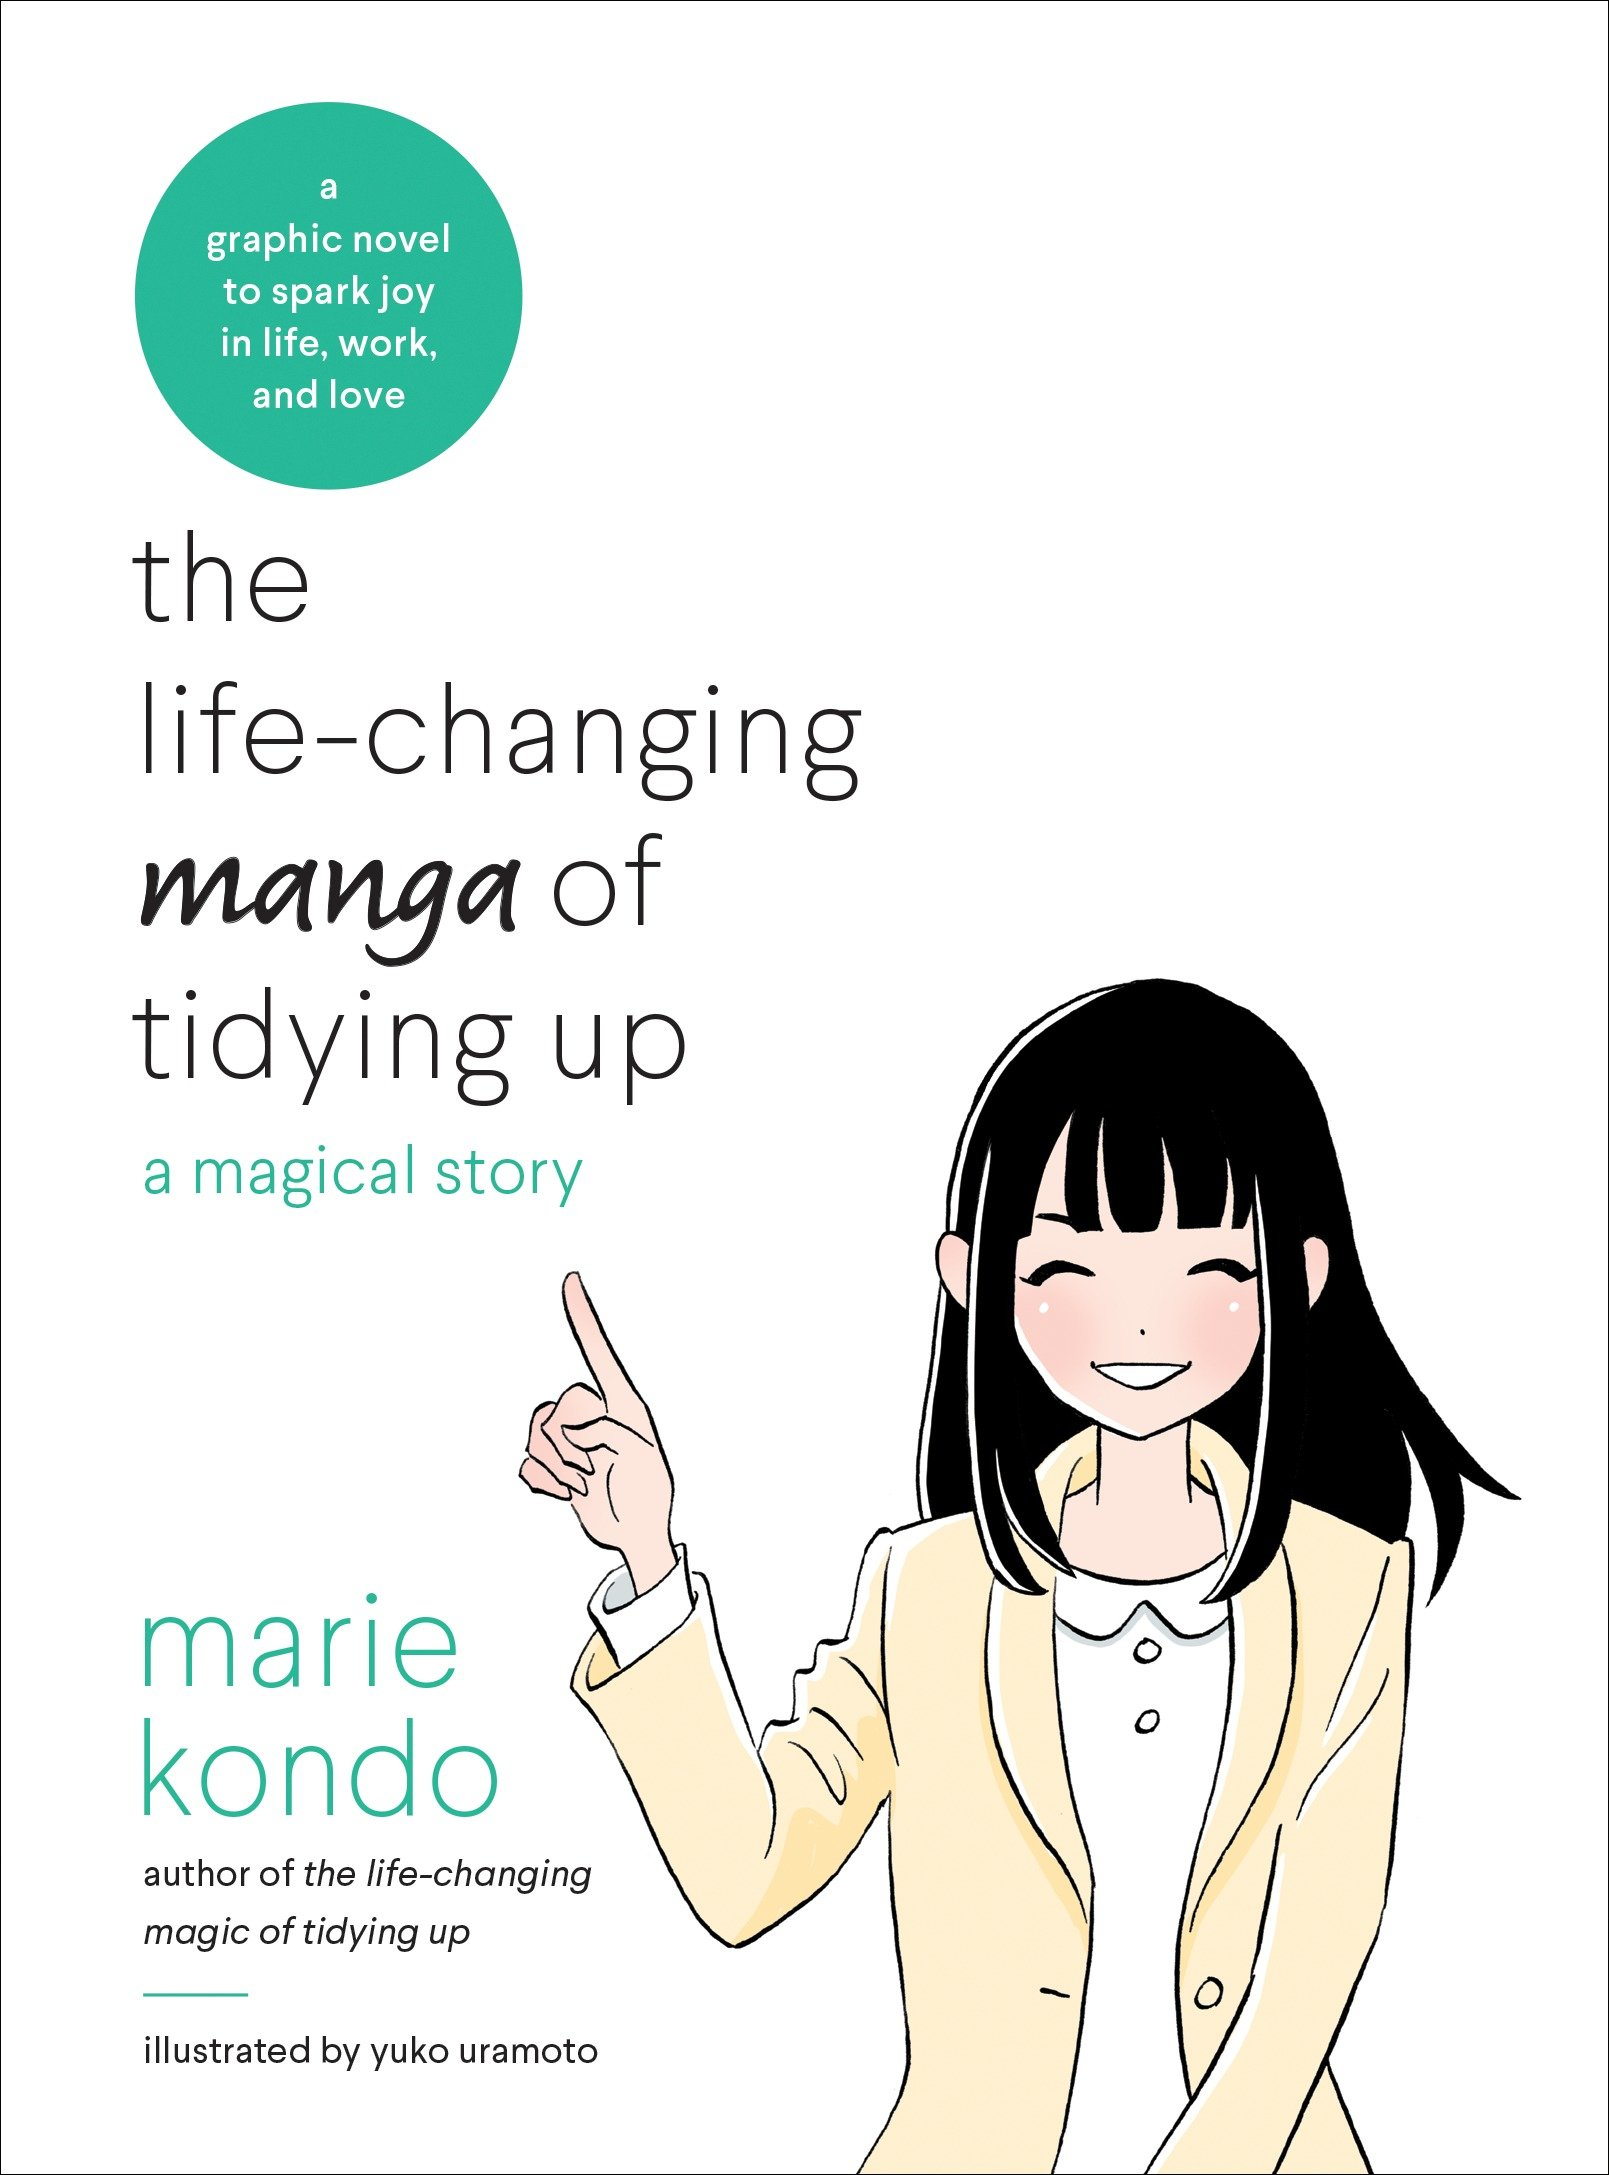 Tidying Up: A Magical Story